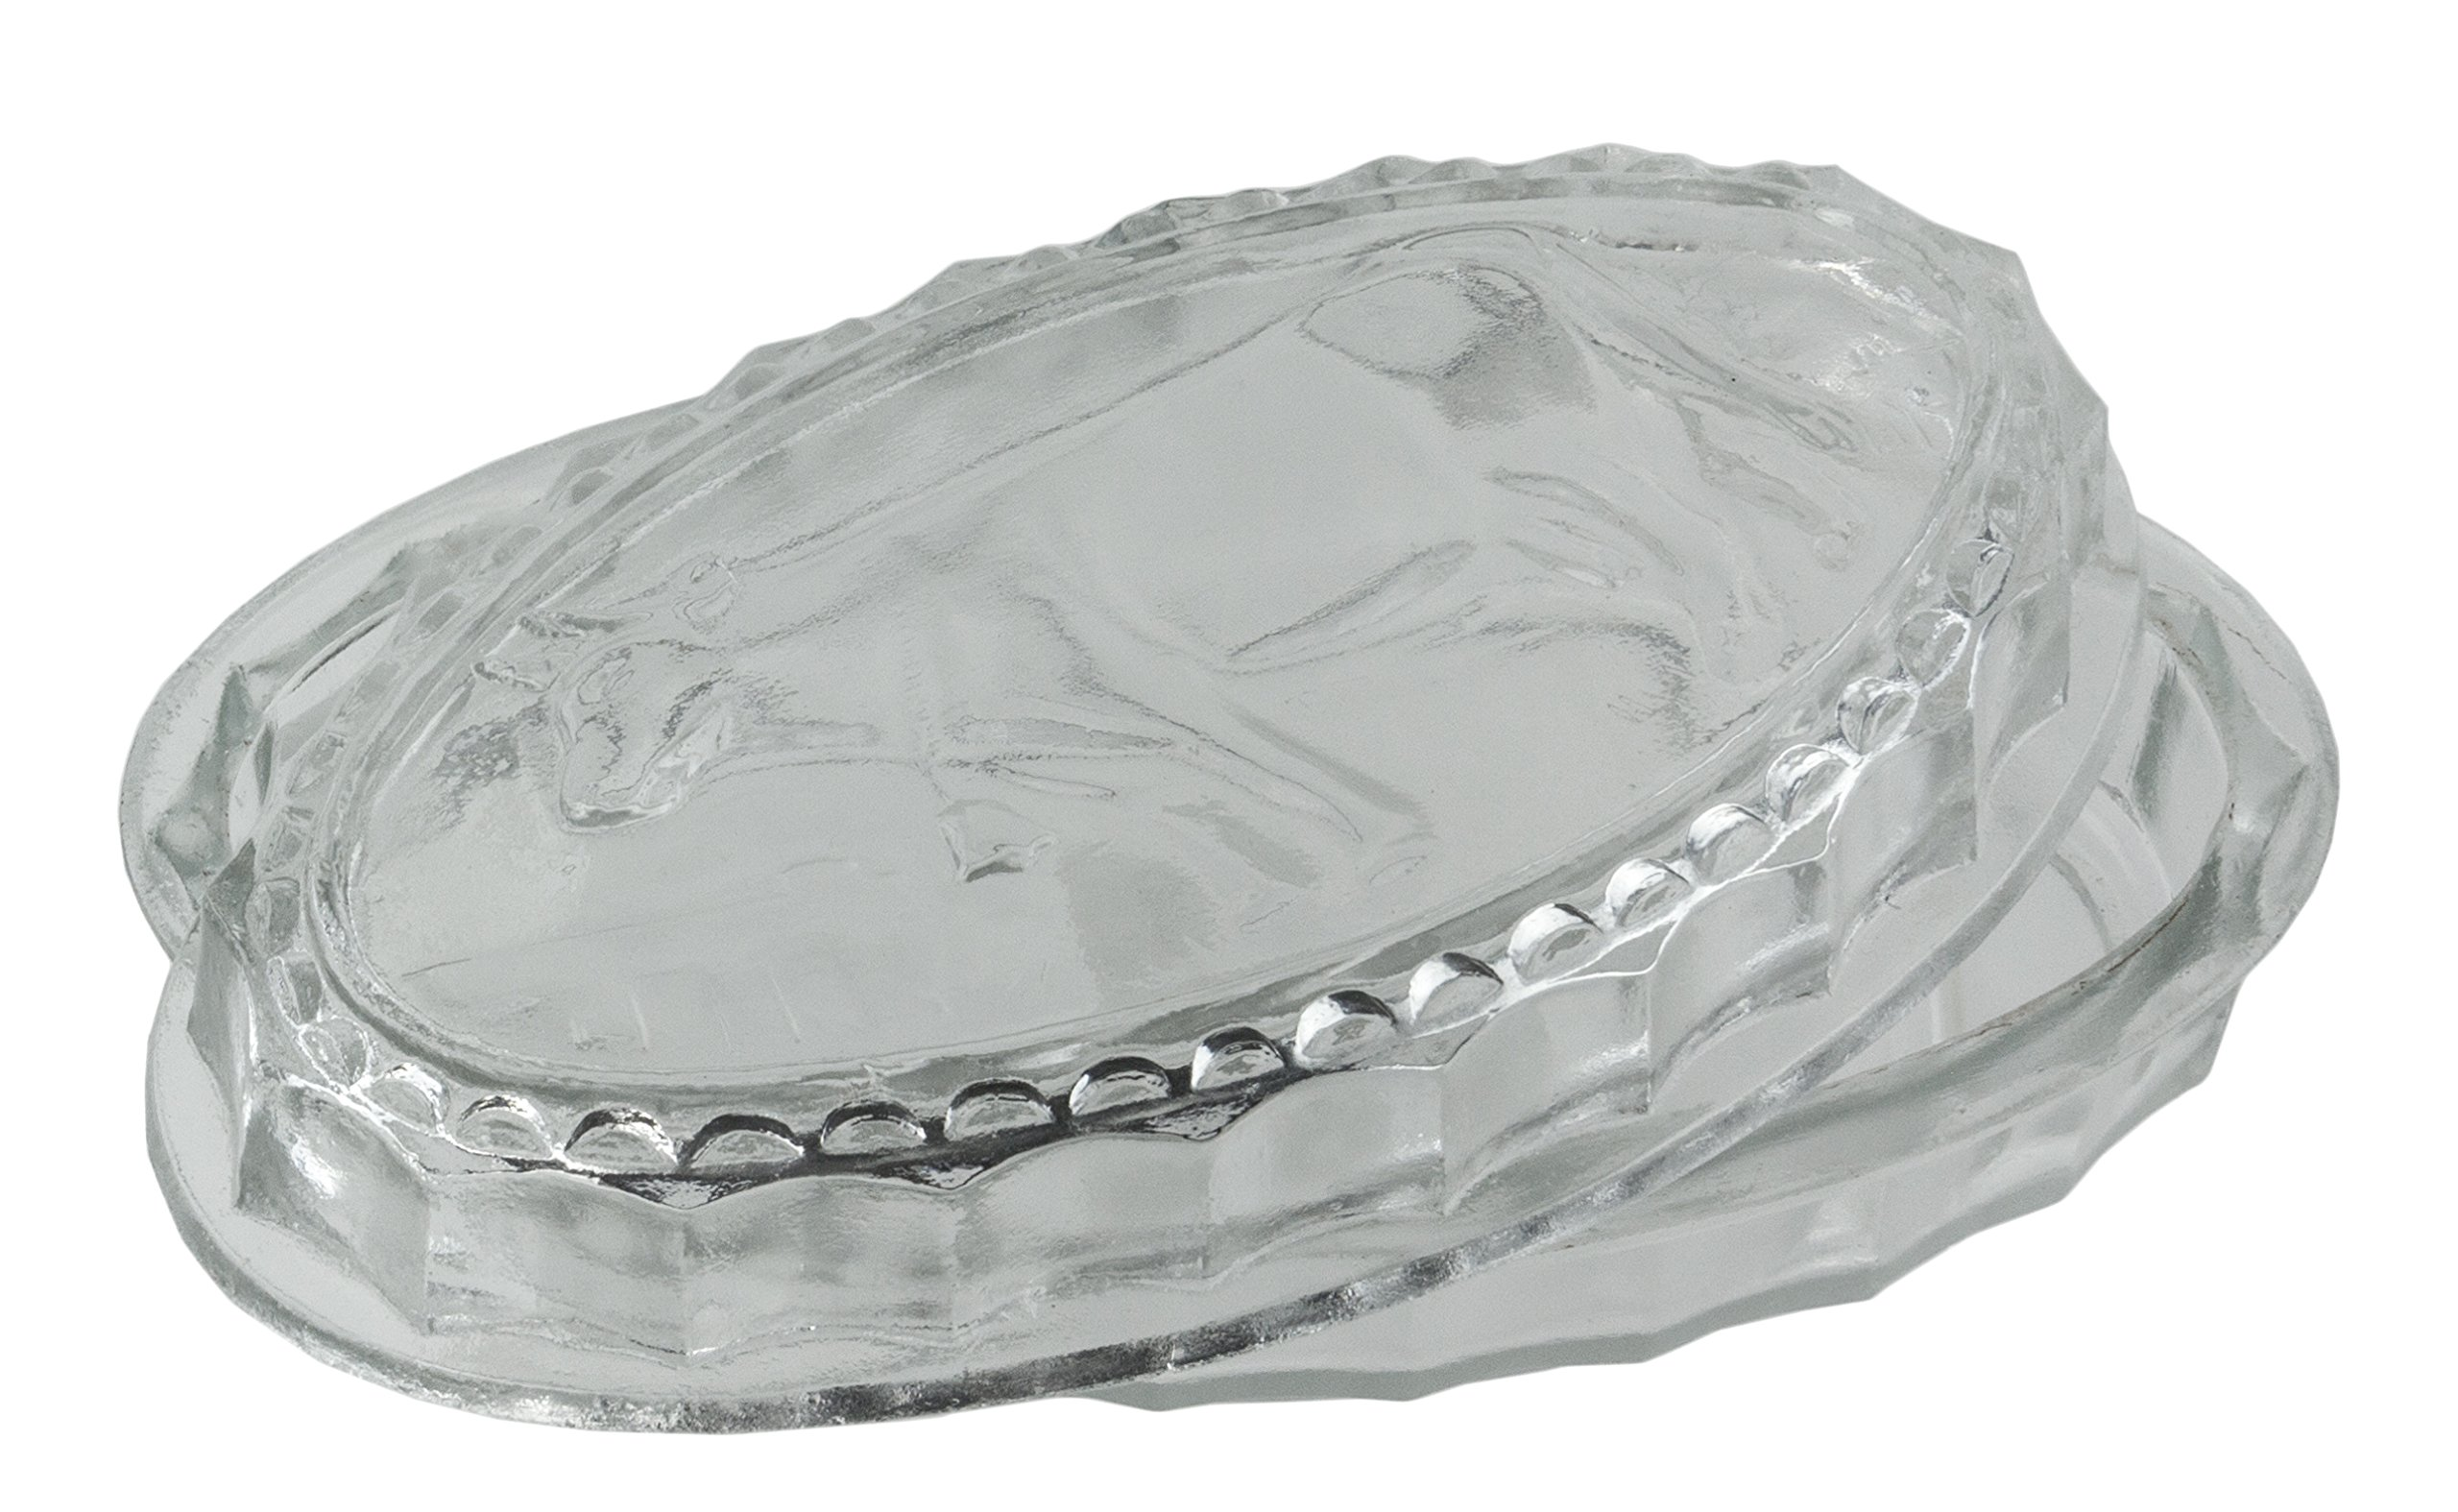 Vintage Style Lidded Clear Glass Cow Cheese & Butter Dish - Aged Farmhouse Chic Home Decor